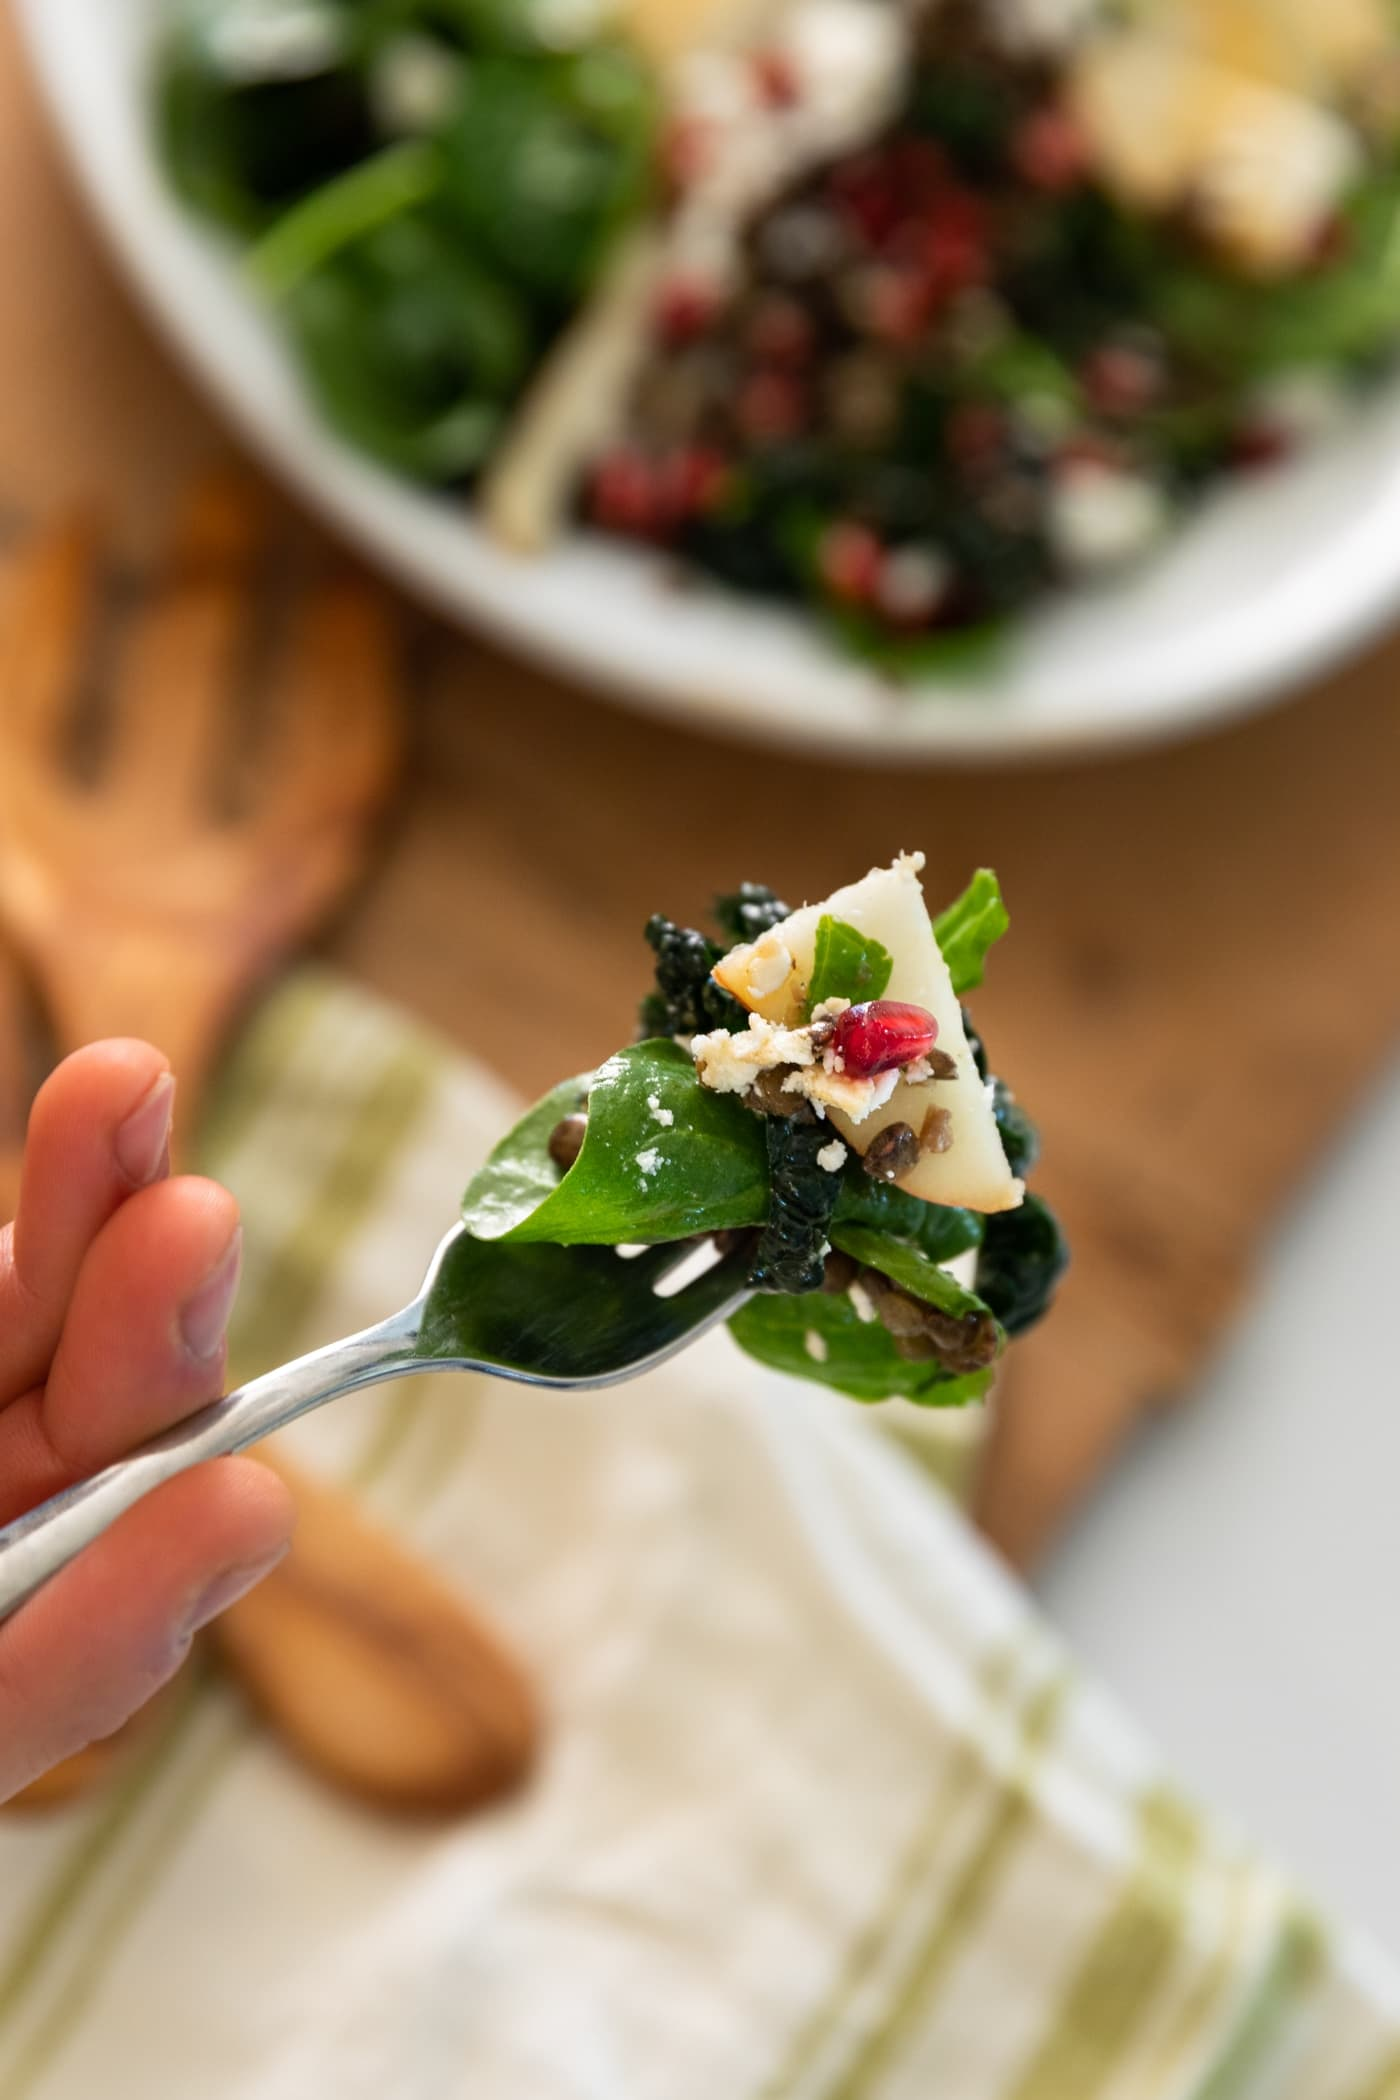 Fork holding bite of salad topped with pomegranate aril and white feta cheese with rest of salad in background